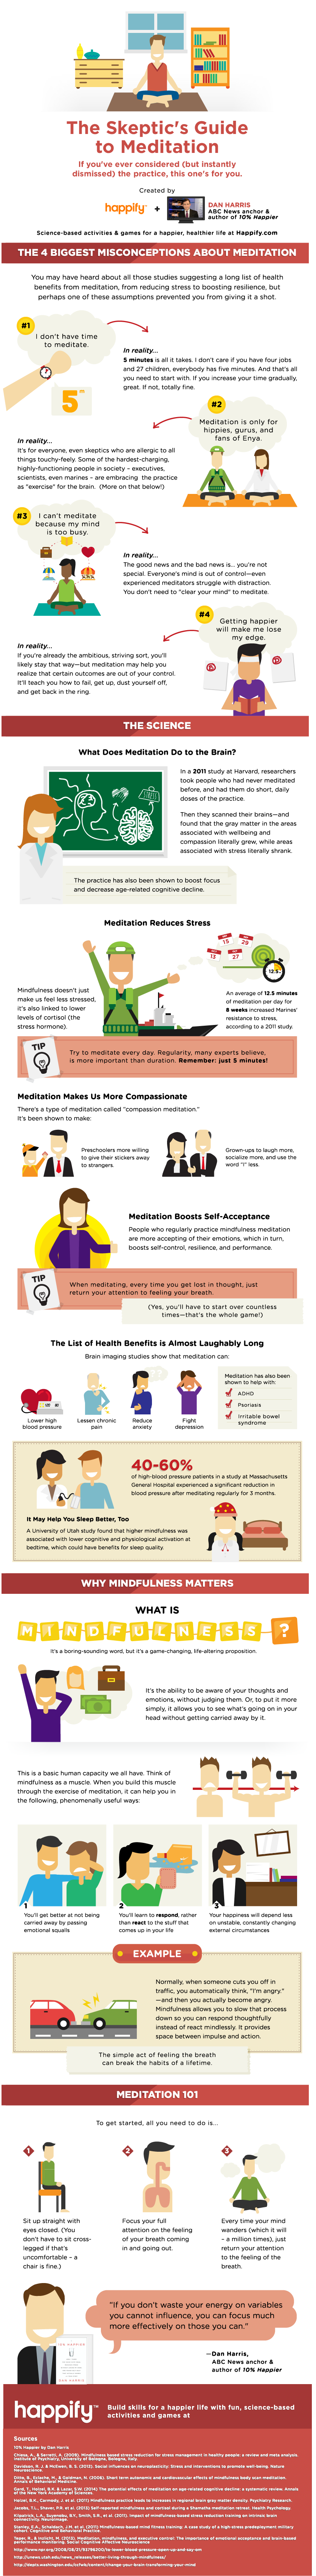 The Skeptic's Guide to Meditation [Infographic] | ecogreenlove